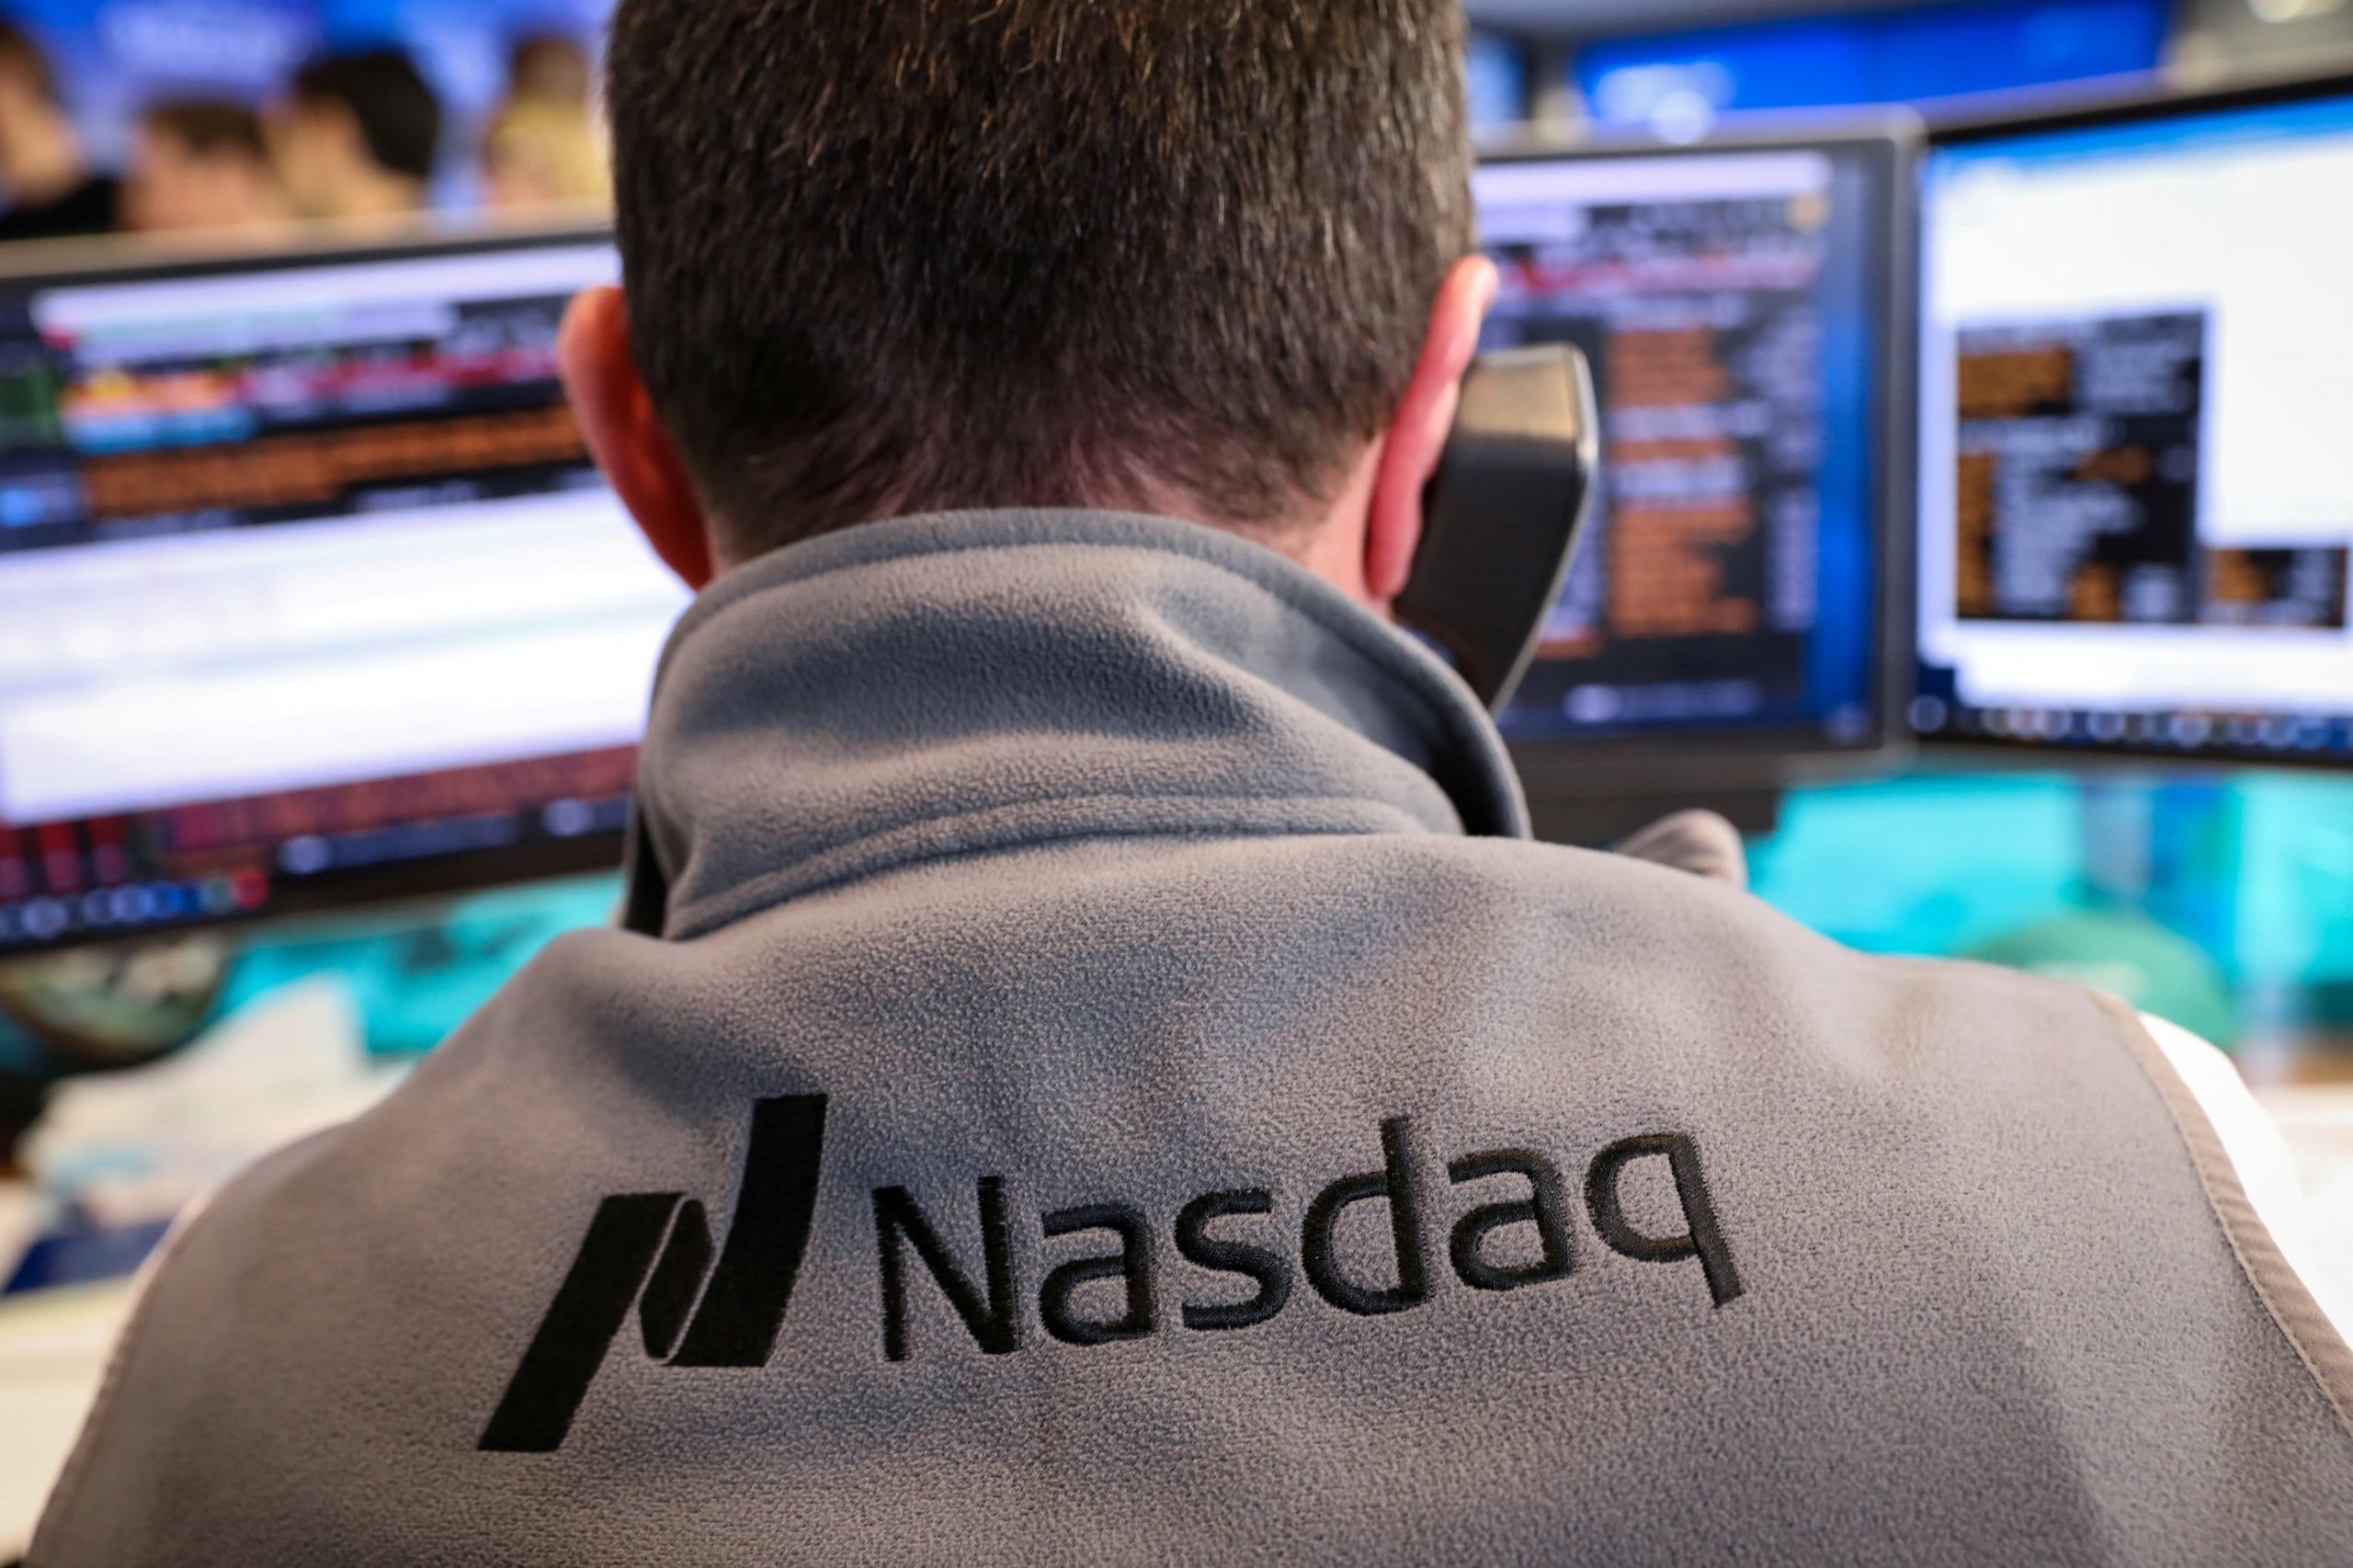 Stock futures are flat in overnight trading after Nasdaq's best day since November